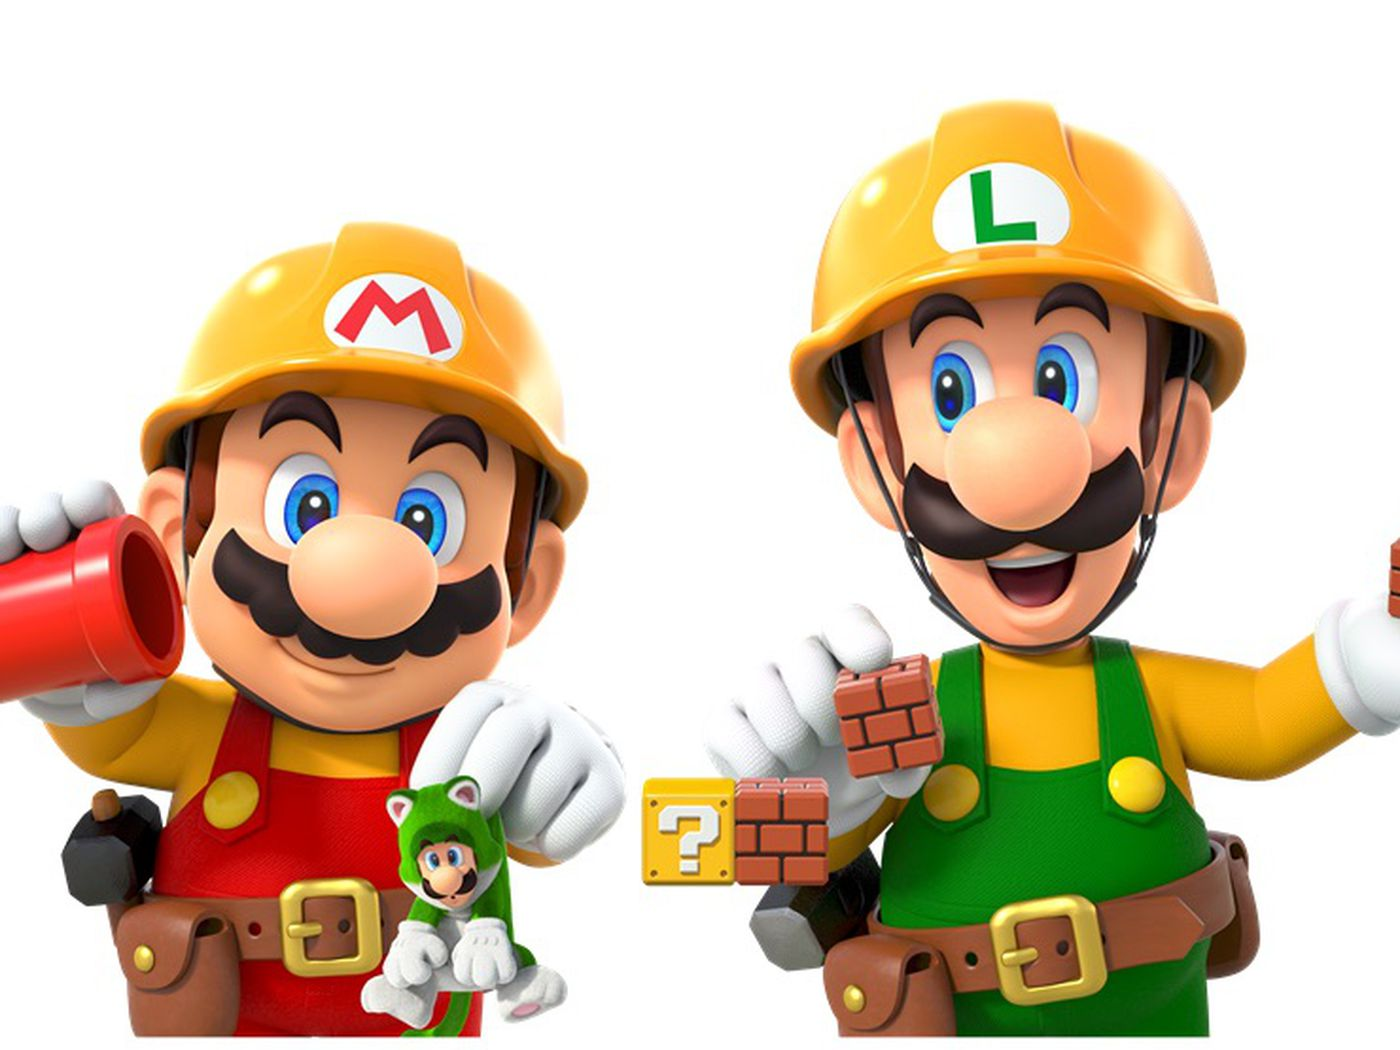 One of Nintendo's top designers says he always wanted a tool like